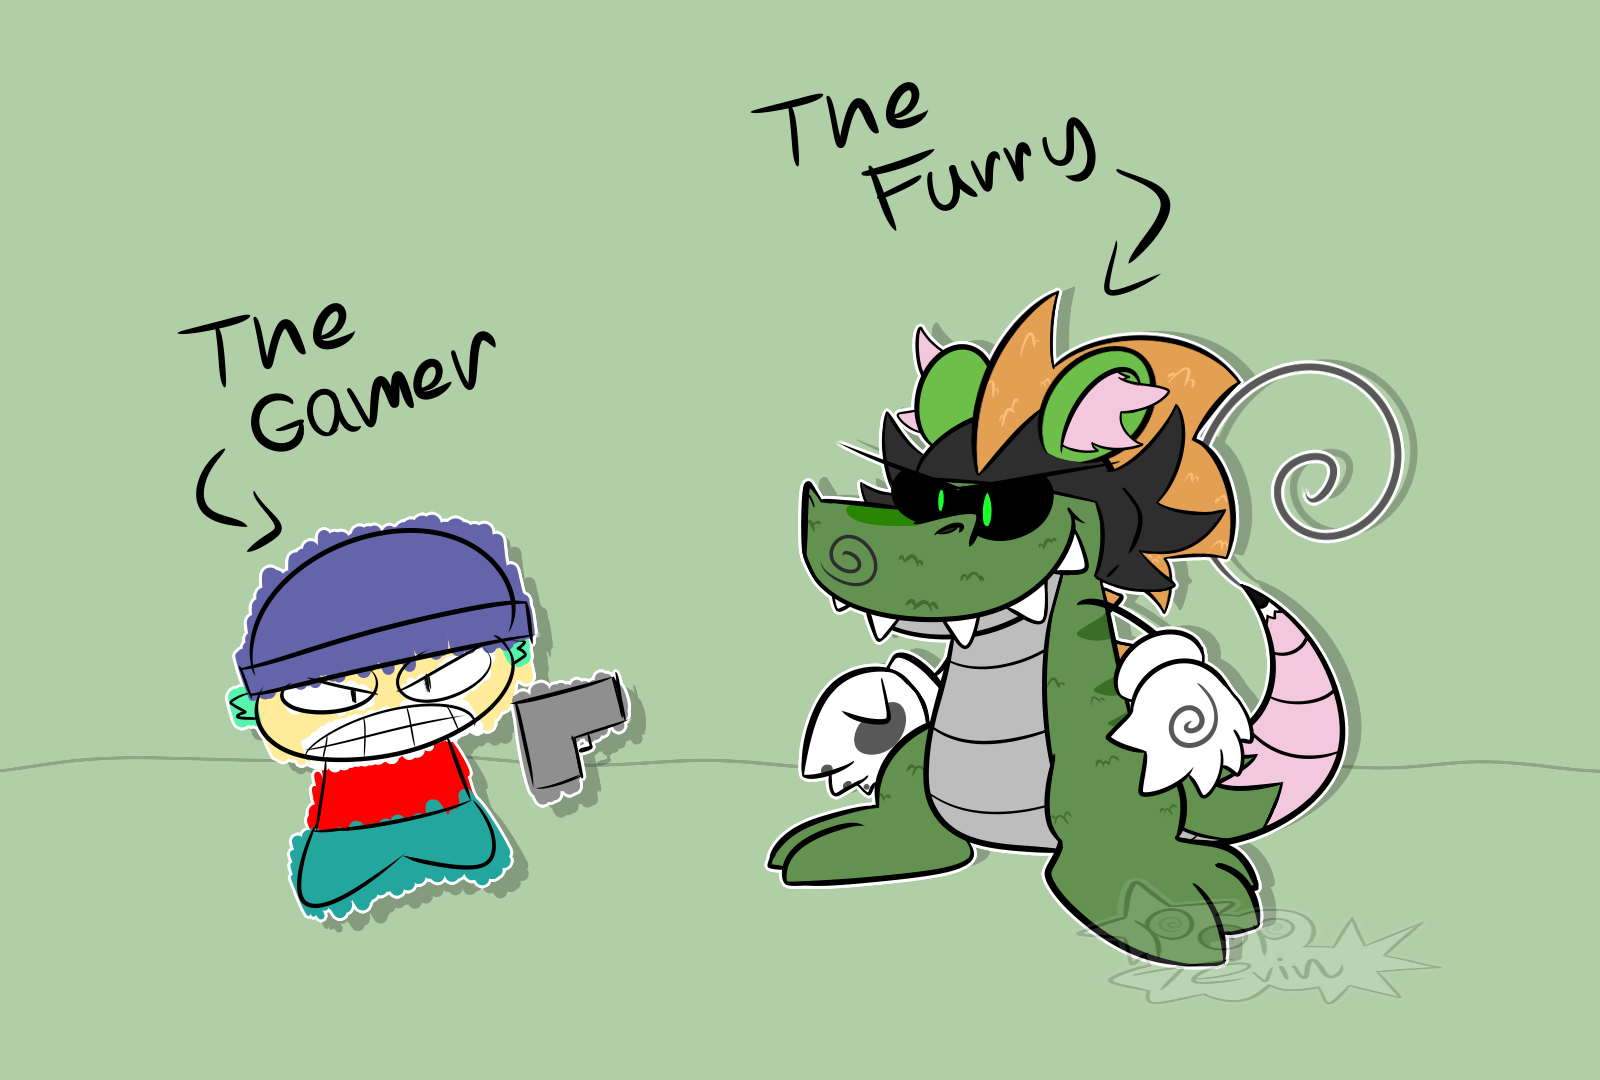 The Furry VS The Gamer